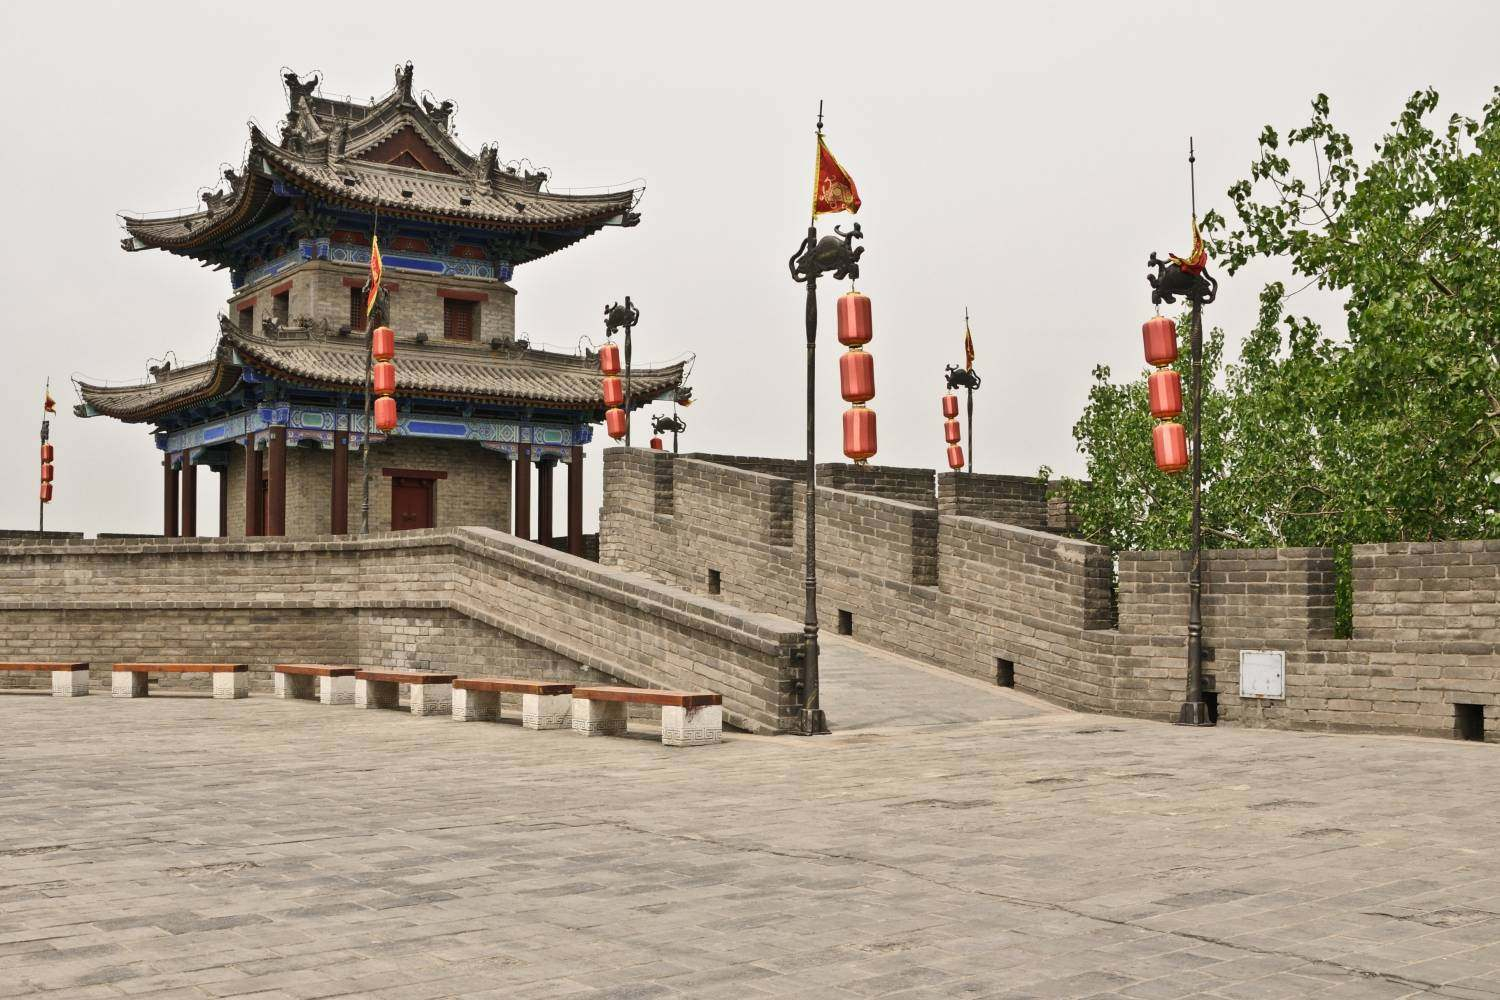 The city wall in Xi'an, China